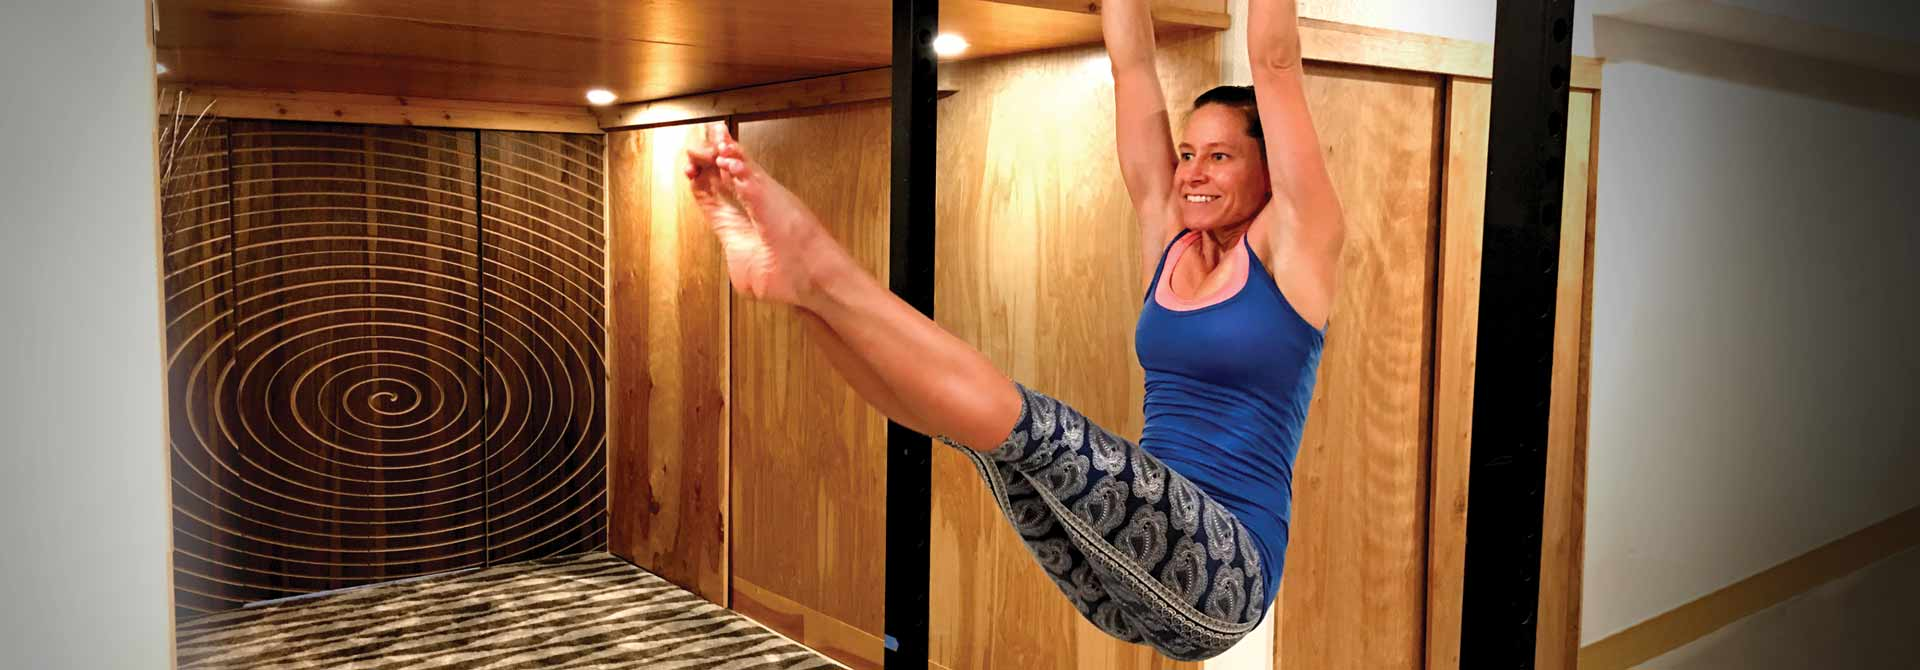 GymnasticBodies female athlete demonstrates core strength in a hanging Straddle-up.